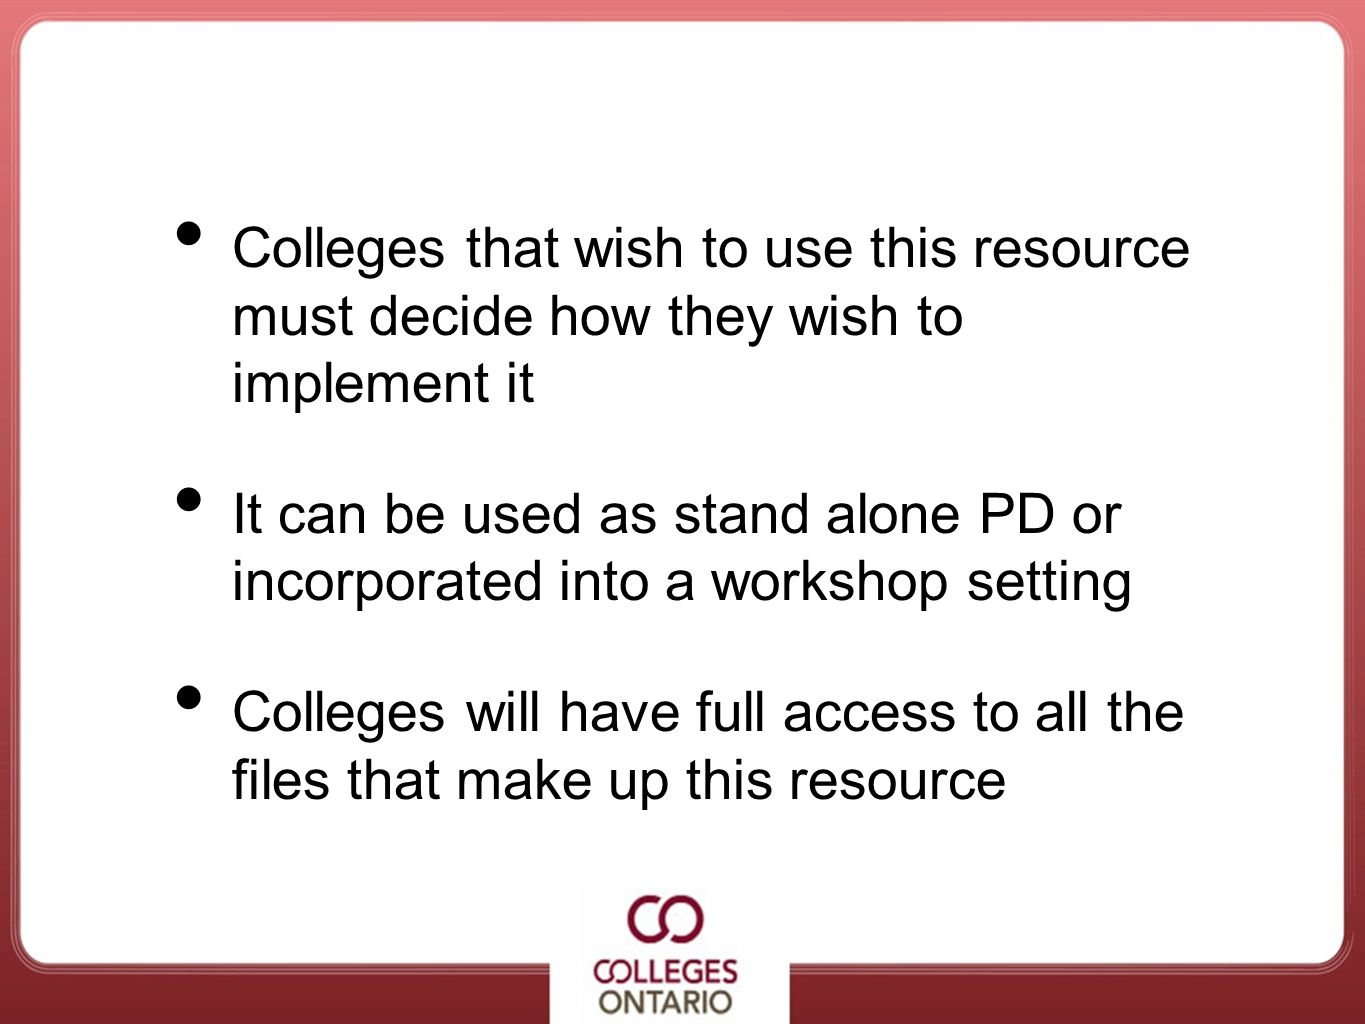 Colleges that wish to use this resource must decide how they wish to implement it